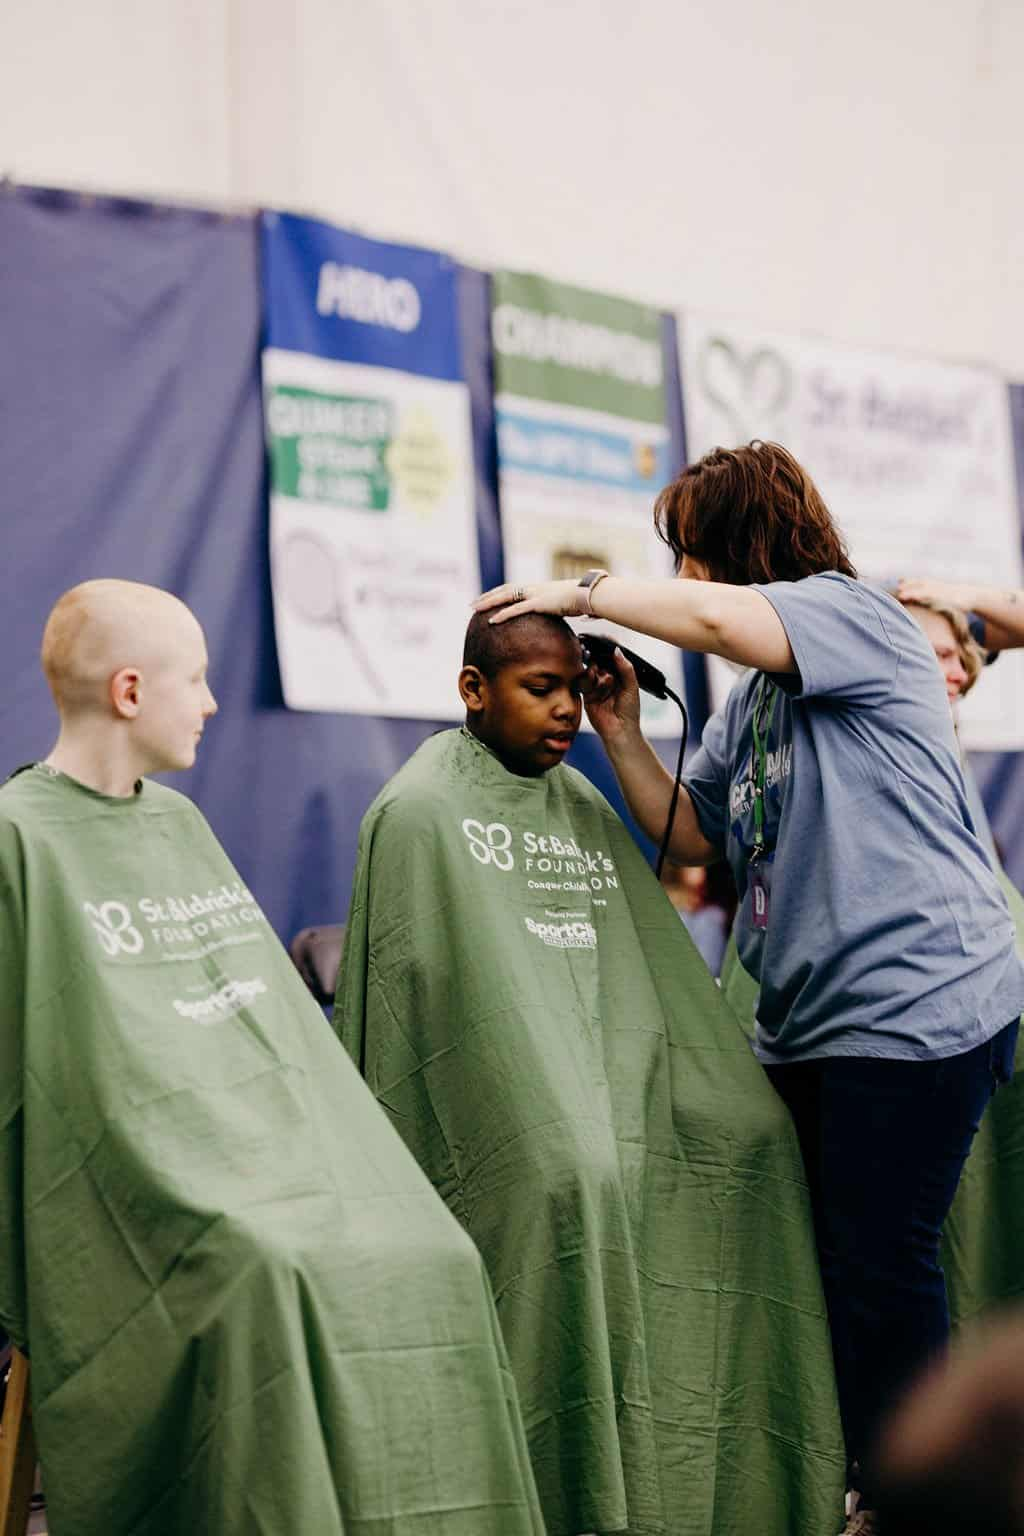 St. Baldricks | I bet you wouldn't shave your head 229